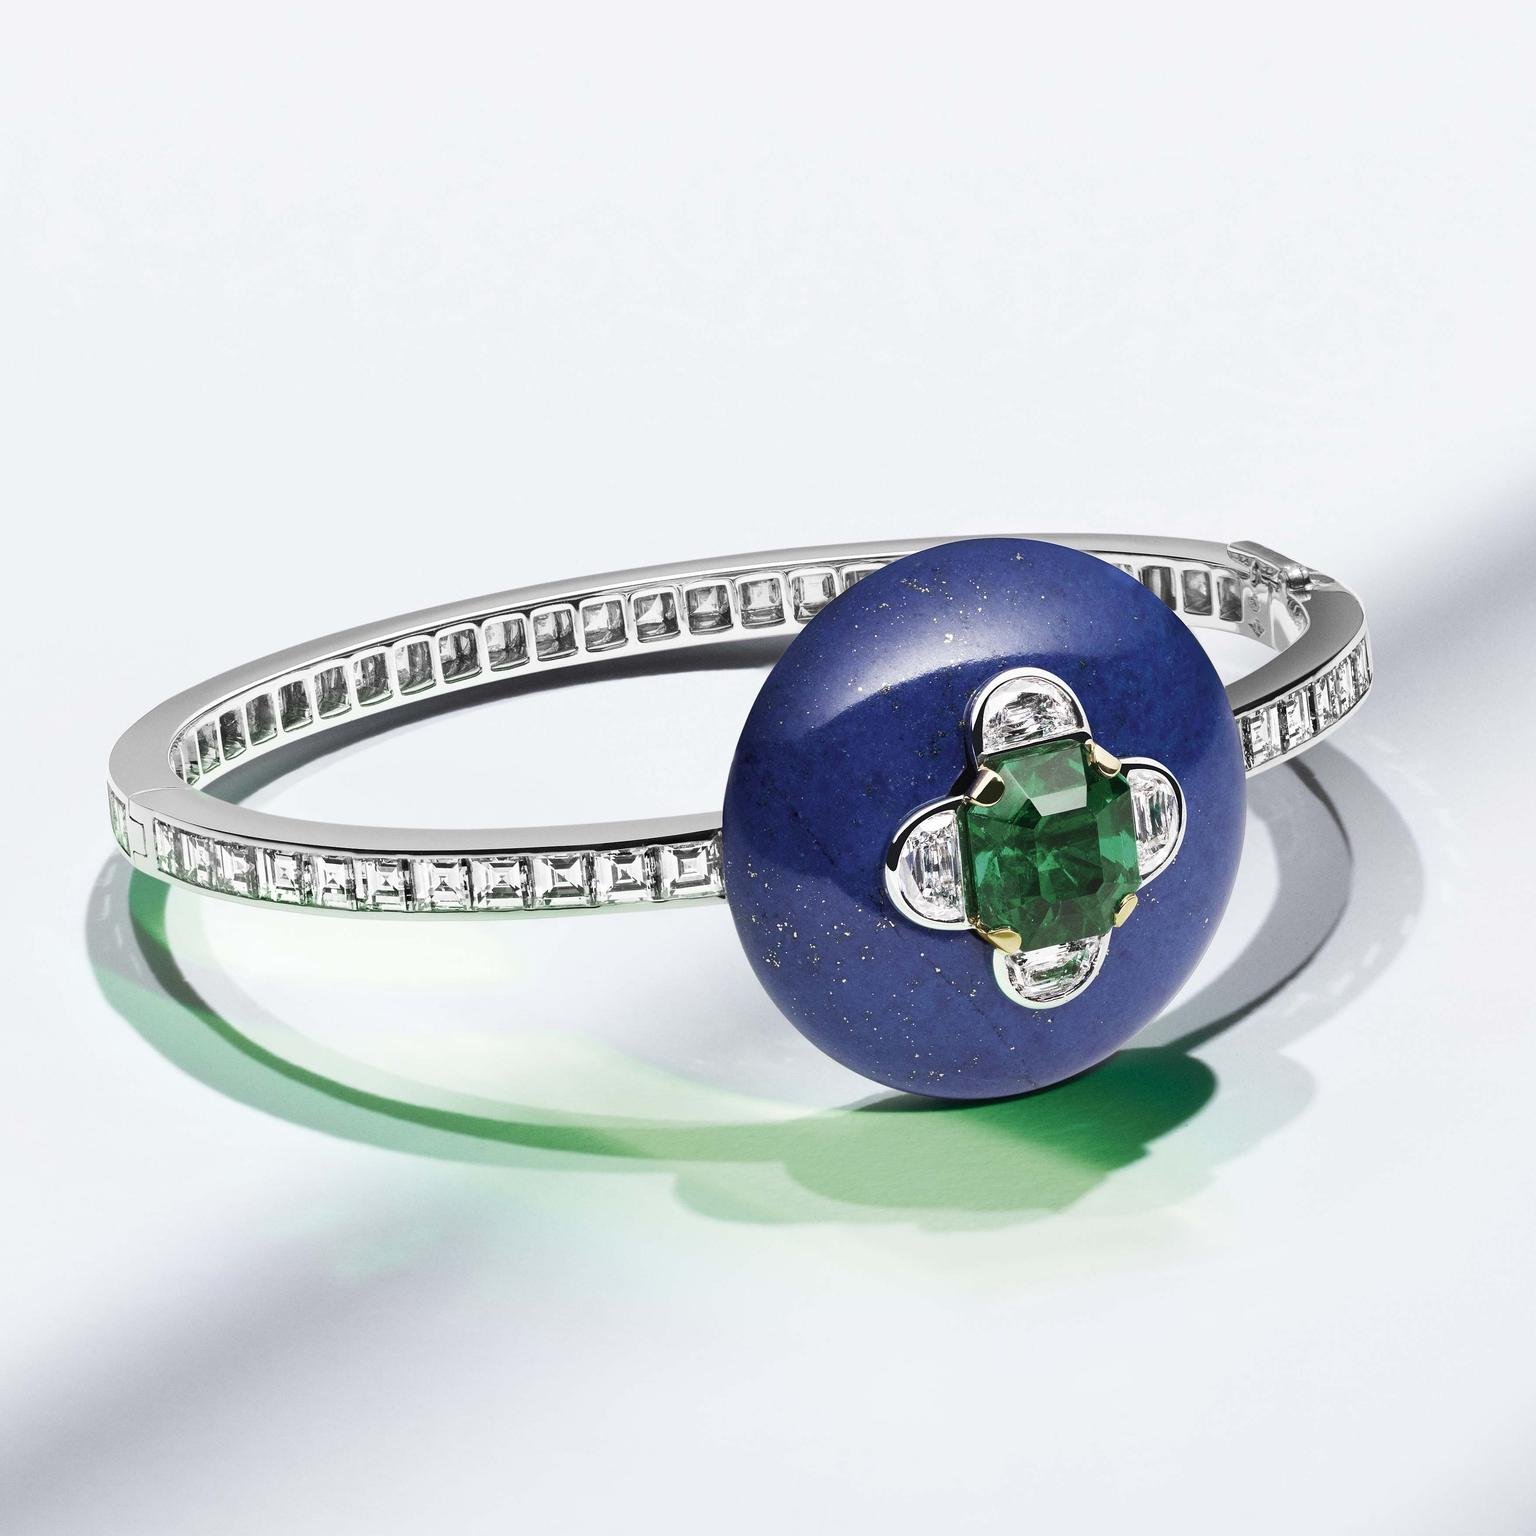 Louis Vuitton Riders of the Knights lapis lazuli diamond and emerald bracelet